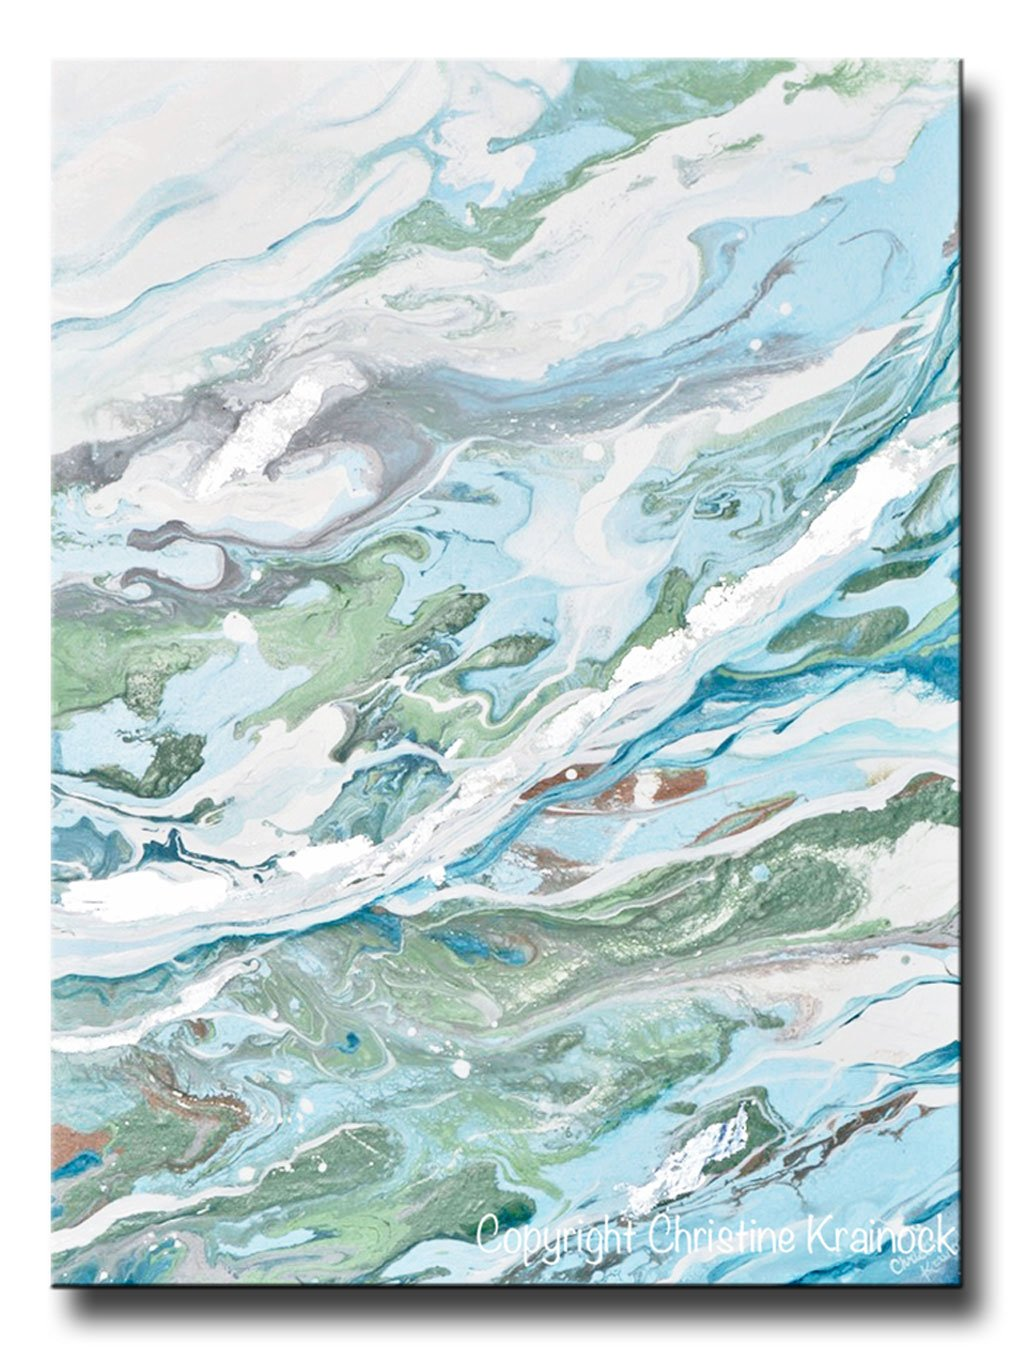 Original art light blue green abstract painting silver leaf marbled